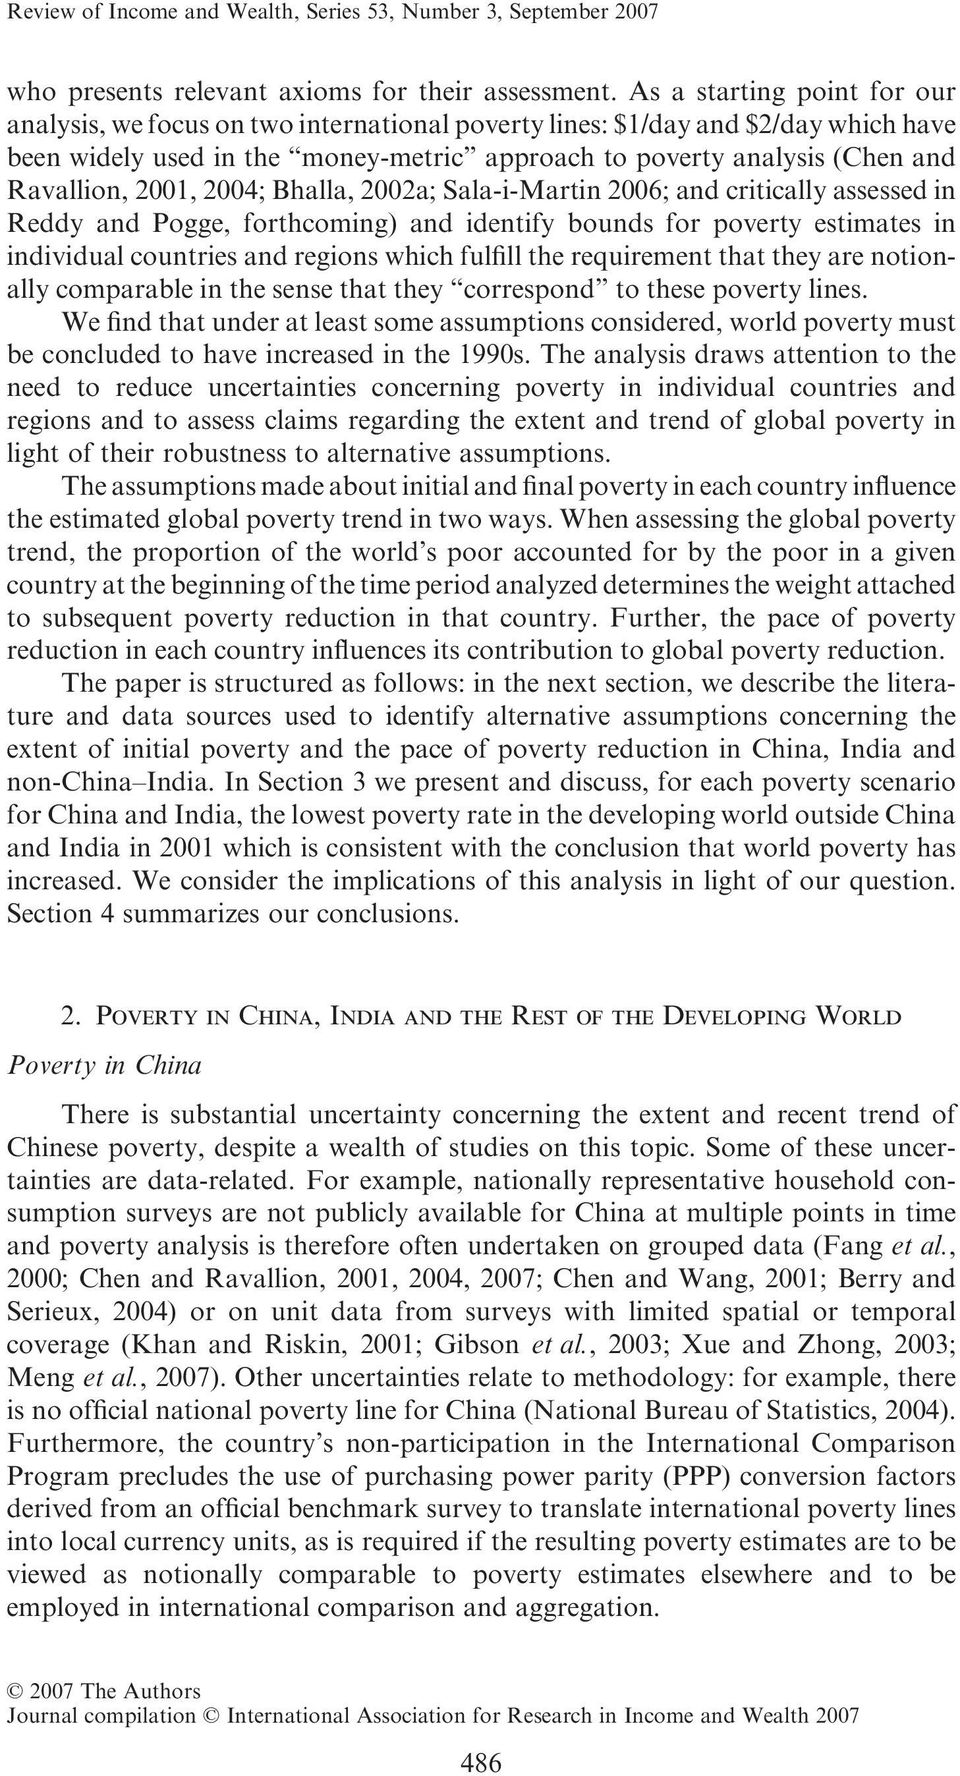 00, 004; Bhalla, 00a; Sala-i-Martin 006; and critically assessed in Reddy and Pogge, forthcoming) and identify bounds for poverty estimates in individual countries and regions which fulfill the